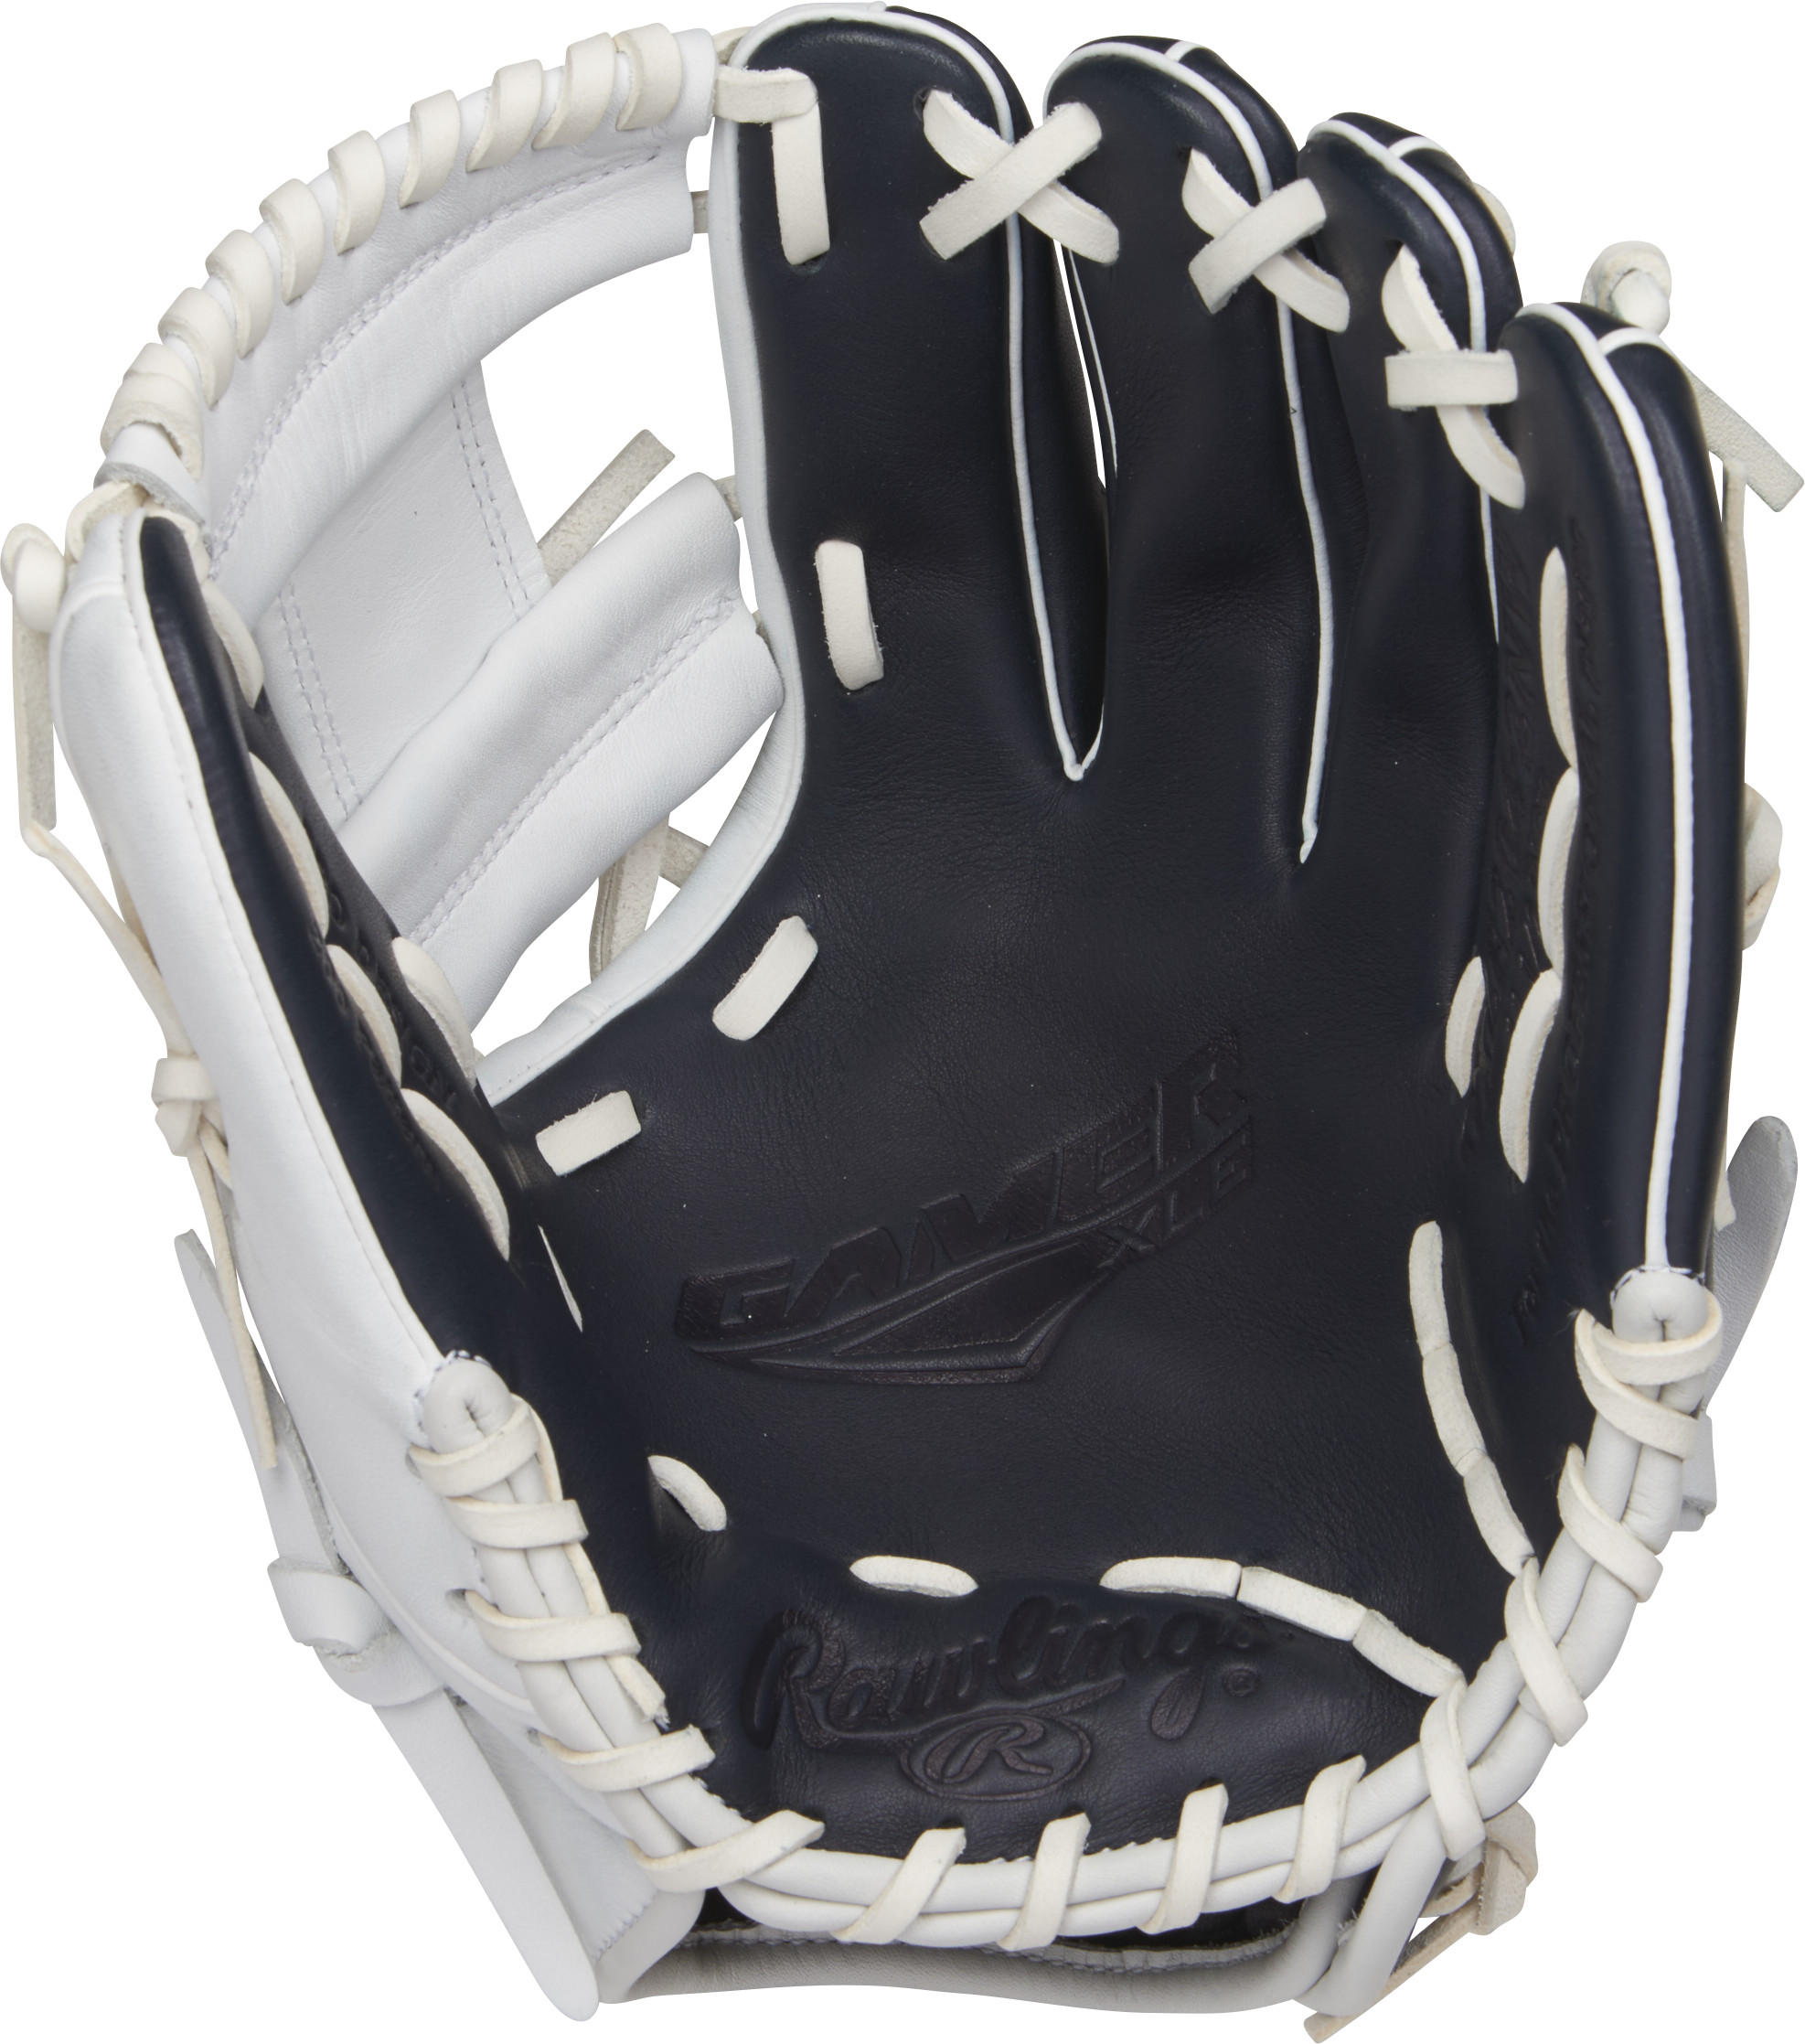 http://www.bestbatdeals.com/images/gloves/rawlings/GXLE204-2NW-1.jpg